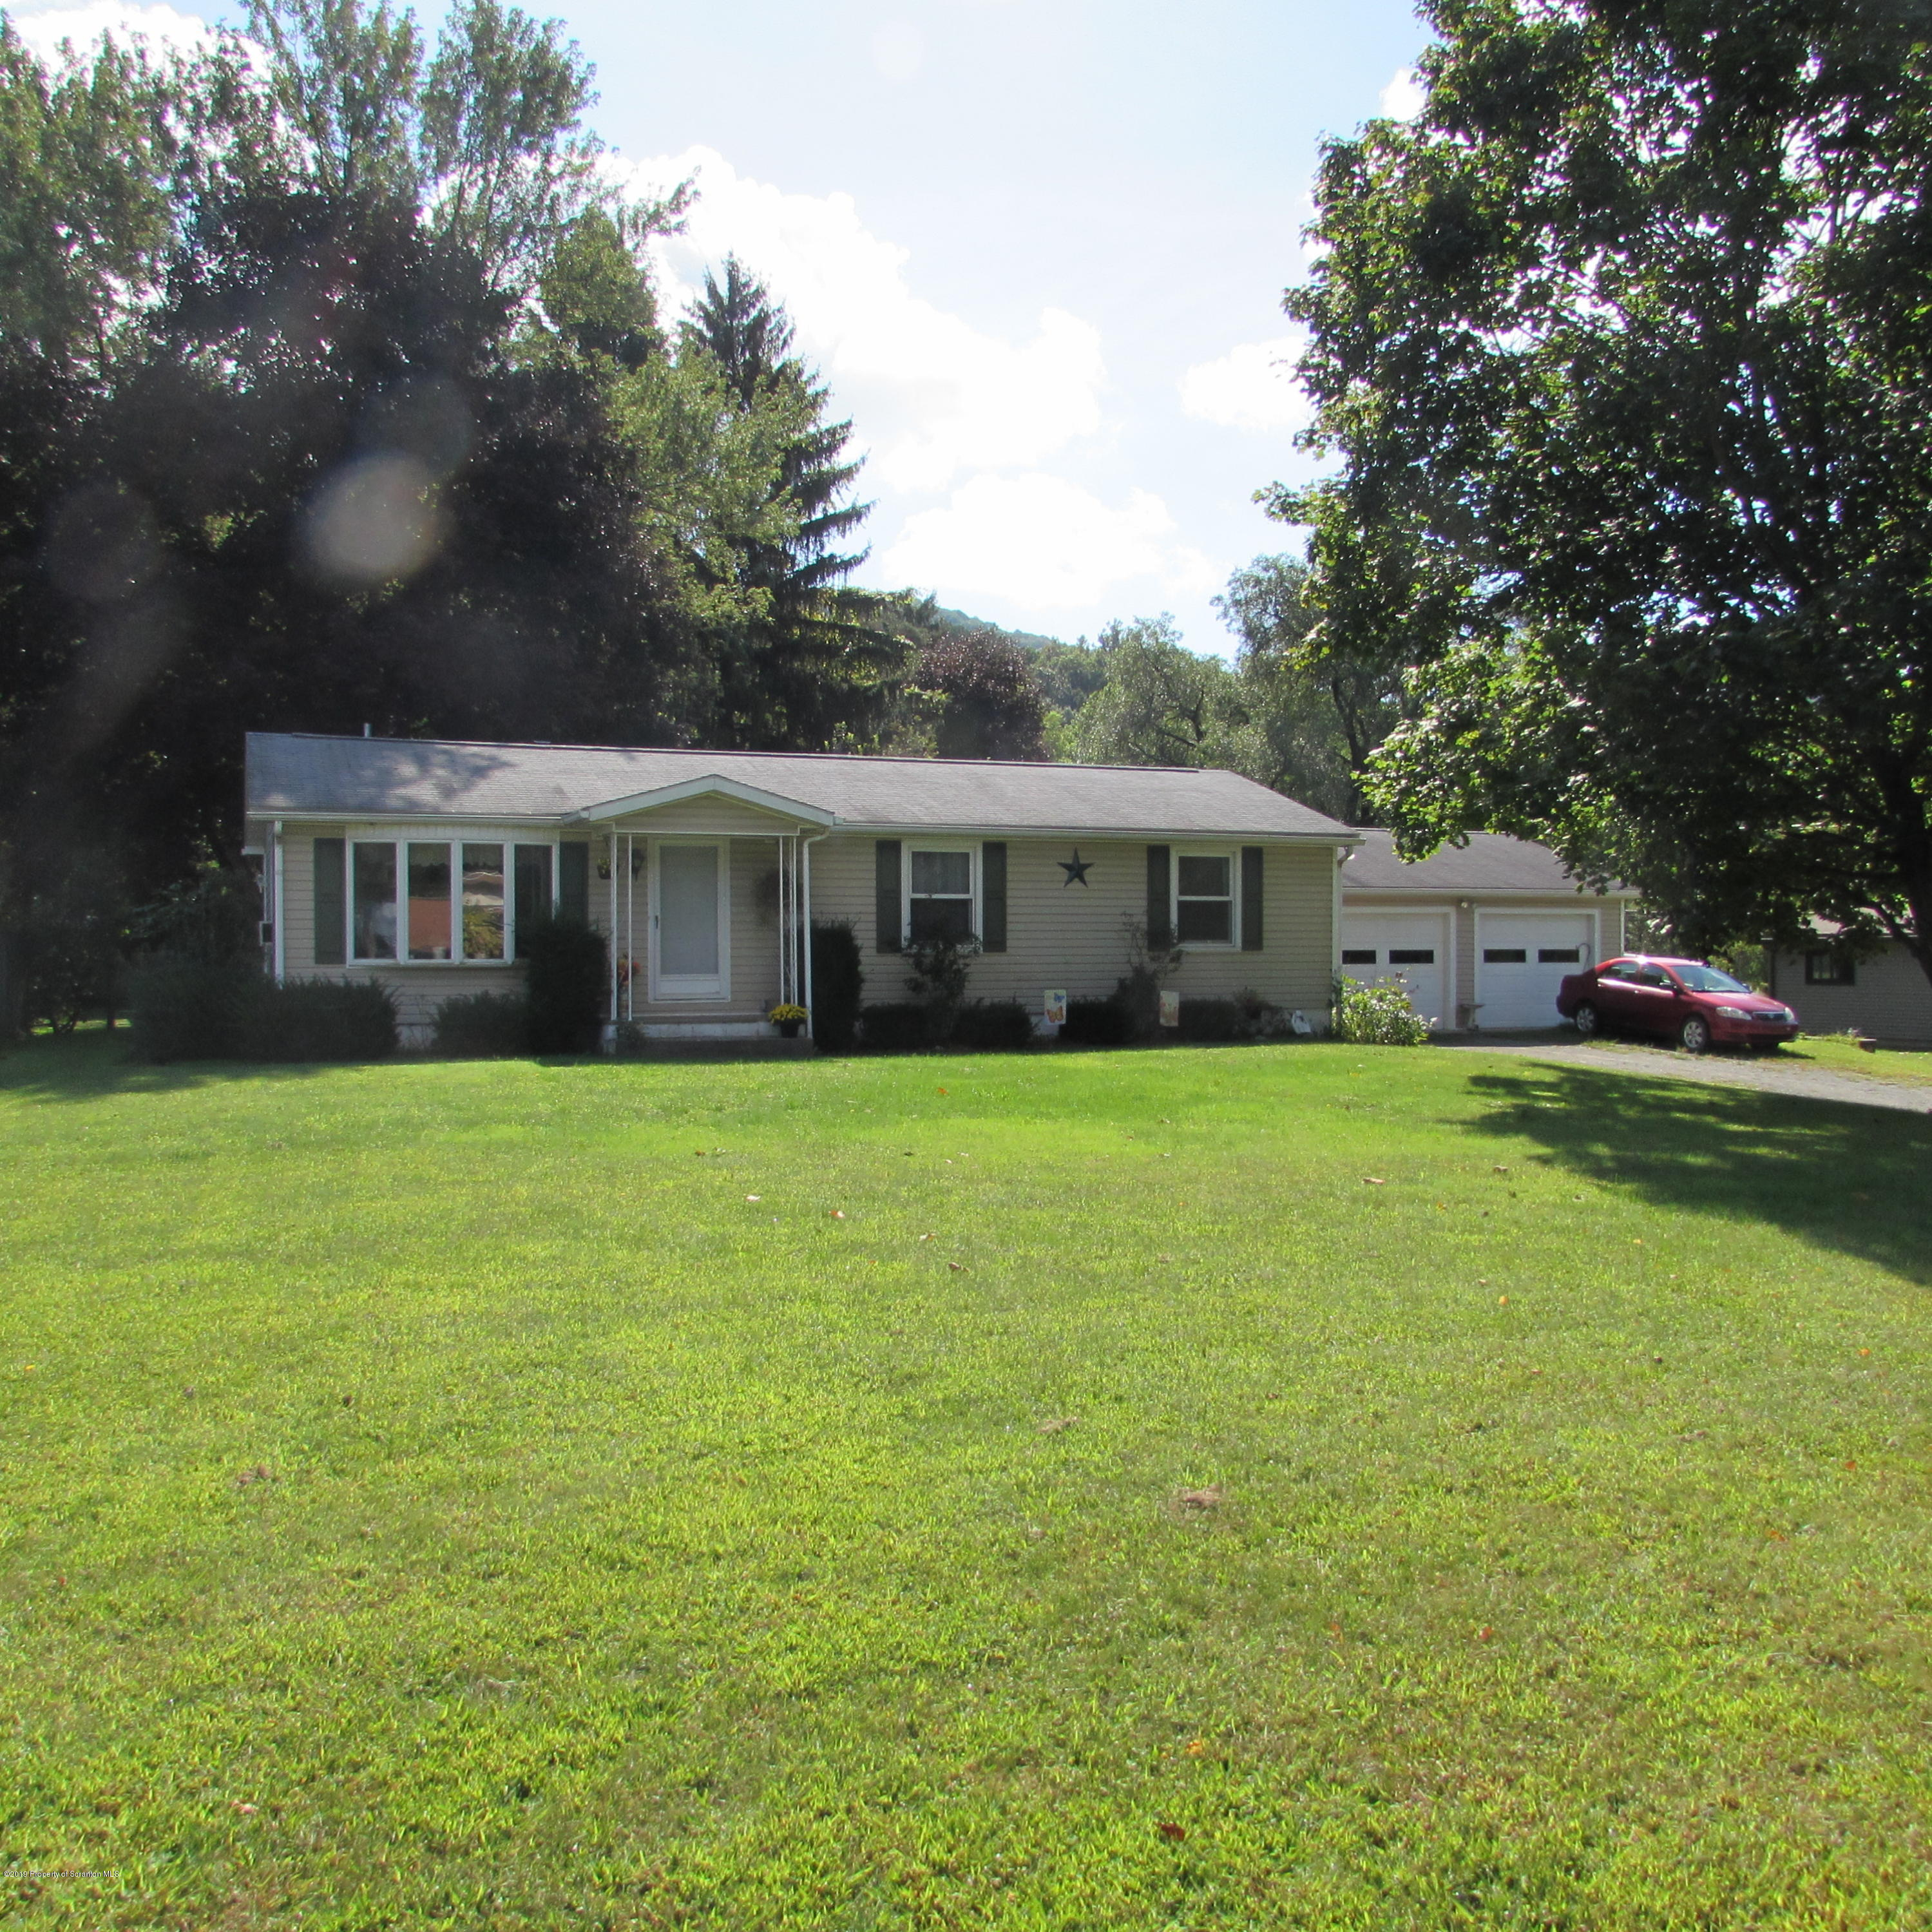 3735 Sr 6, Tunkhannock, Pennsylvania 18657, 3 Bedrooms Bedrooms, 6 Rooms Rooms,1 BathroomBathrooms,Single Family,For Sale,Sr 6,19-4453